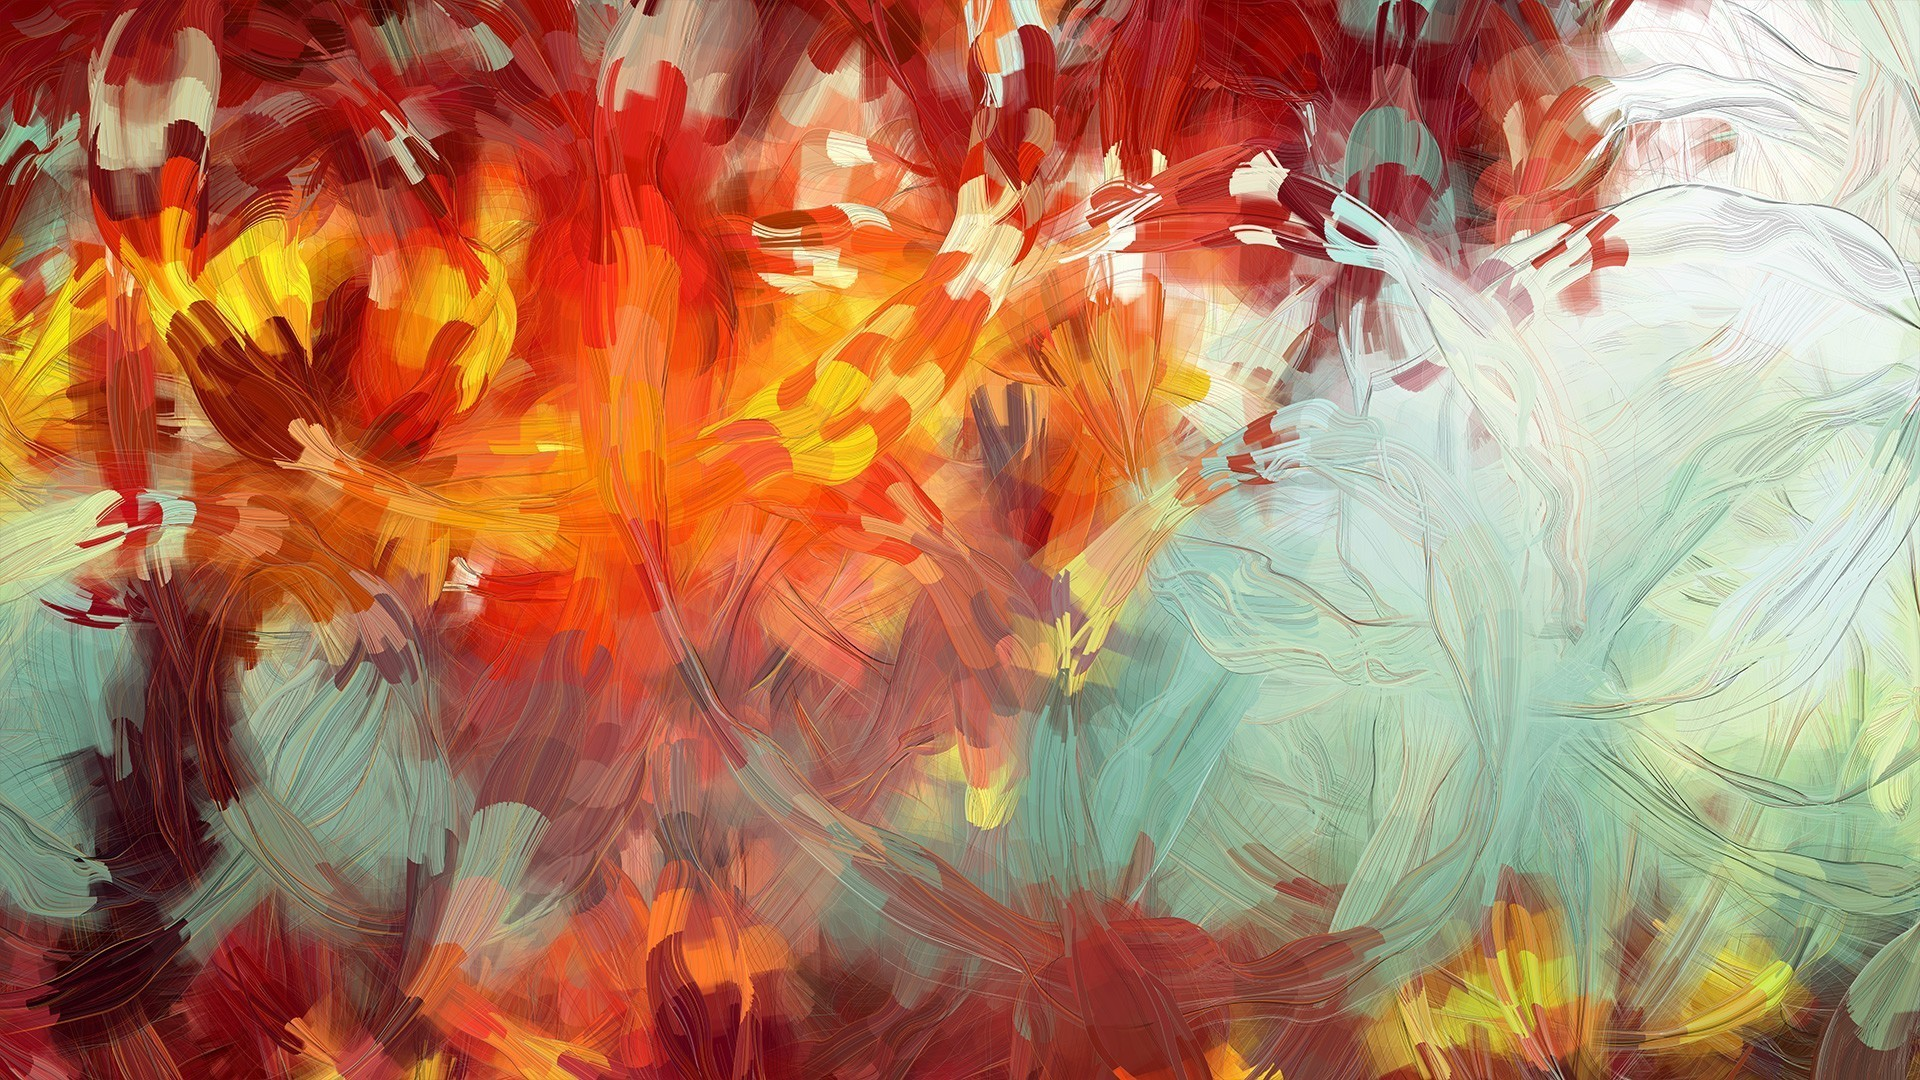 Finger Painting HD desktop wallpaper Widescreen High